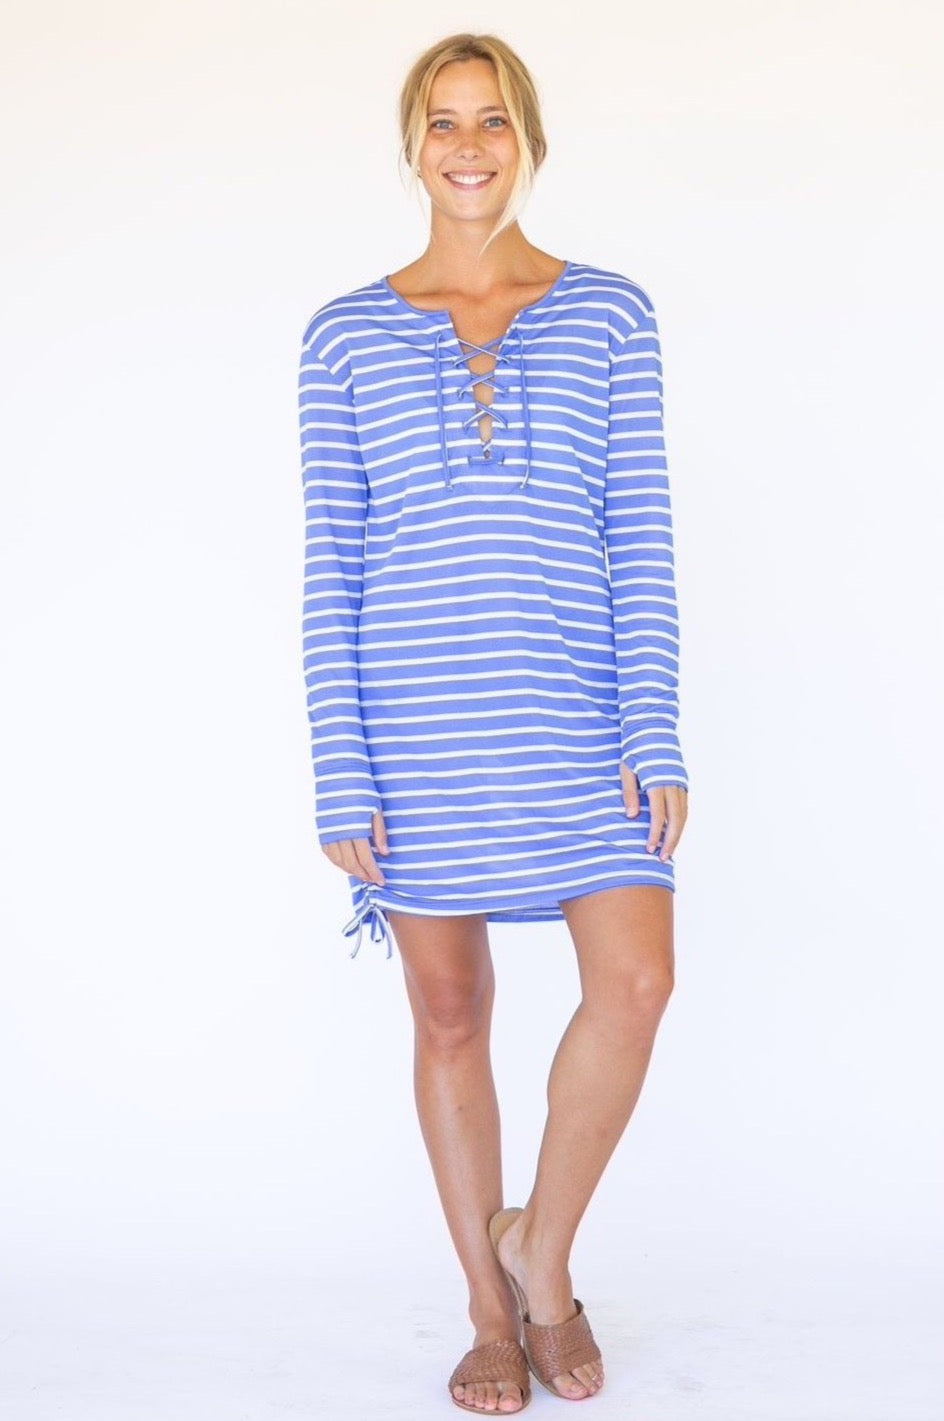 UPF50 sun protection dress